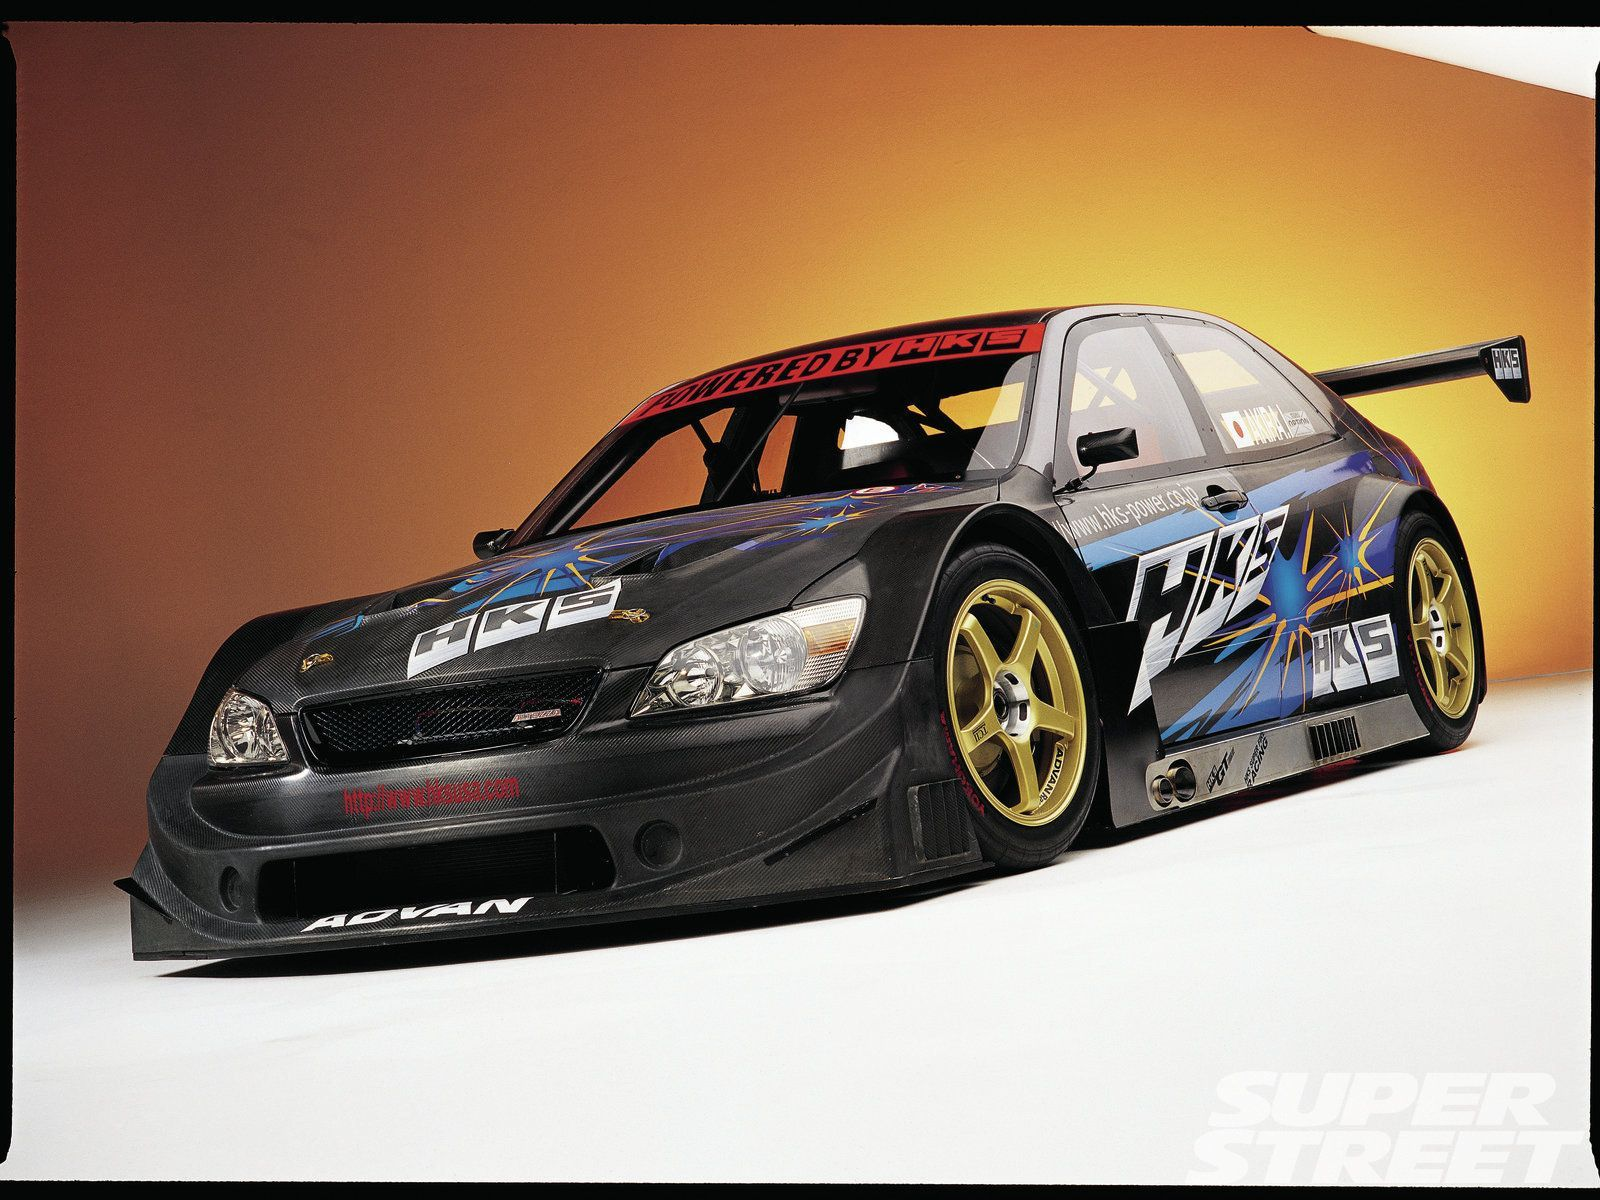 Sstp 1105 03 O Top 20 Jdm Cars Of All Time 2000 Toyota Altezza 1600 1200 Best Jdm Cars Sport Cars Jdm Cars